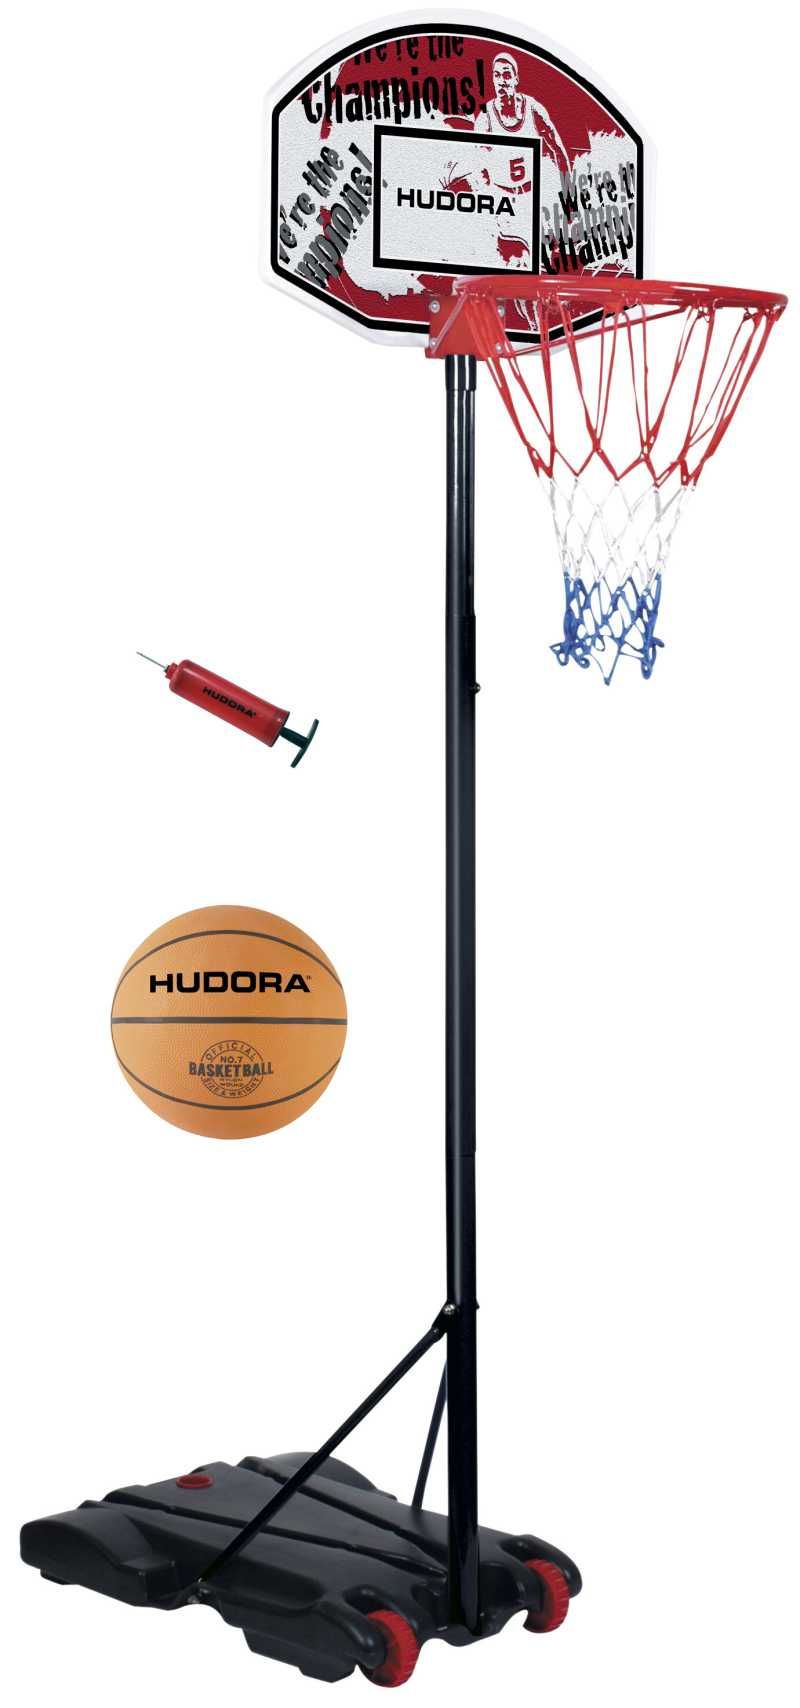 Basketballstaender-incl-Ball-Pumpe-Hudora-All-Stars-Basketballkorb